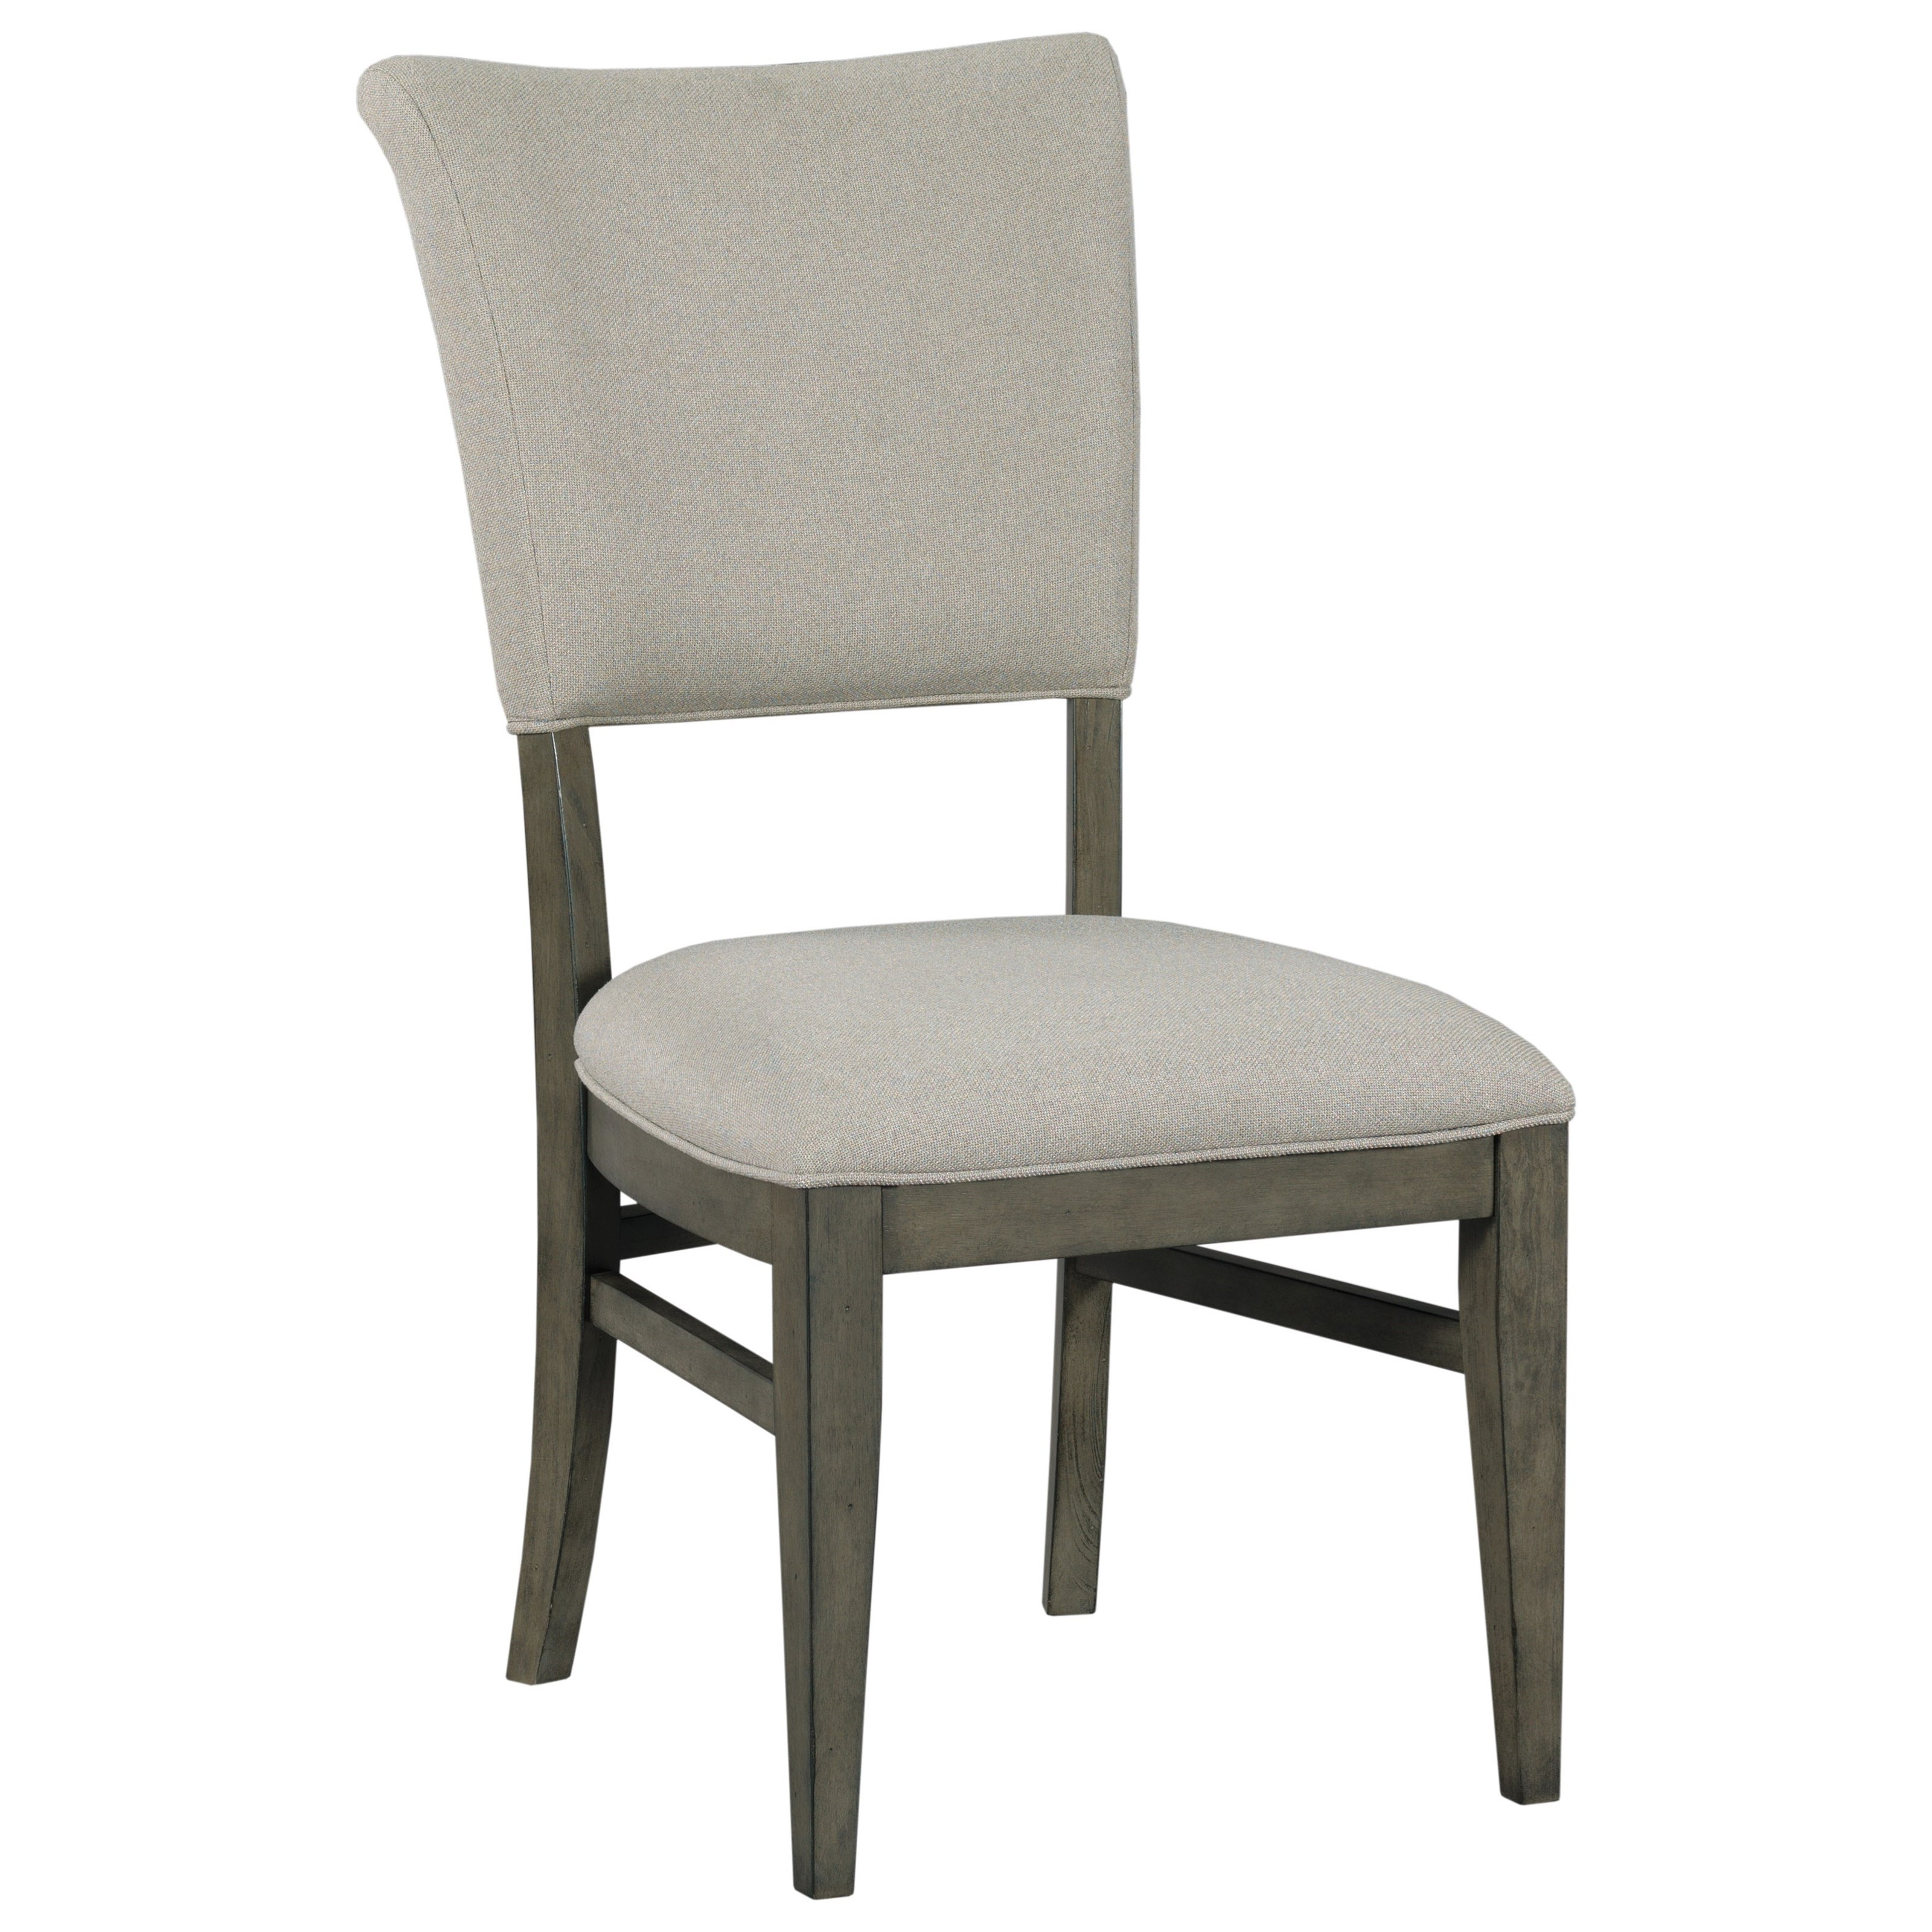 Cascade Hyde Side Chair by Kincaid Furniture at Home Collections Furniture